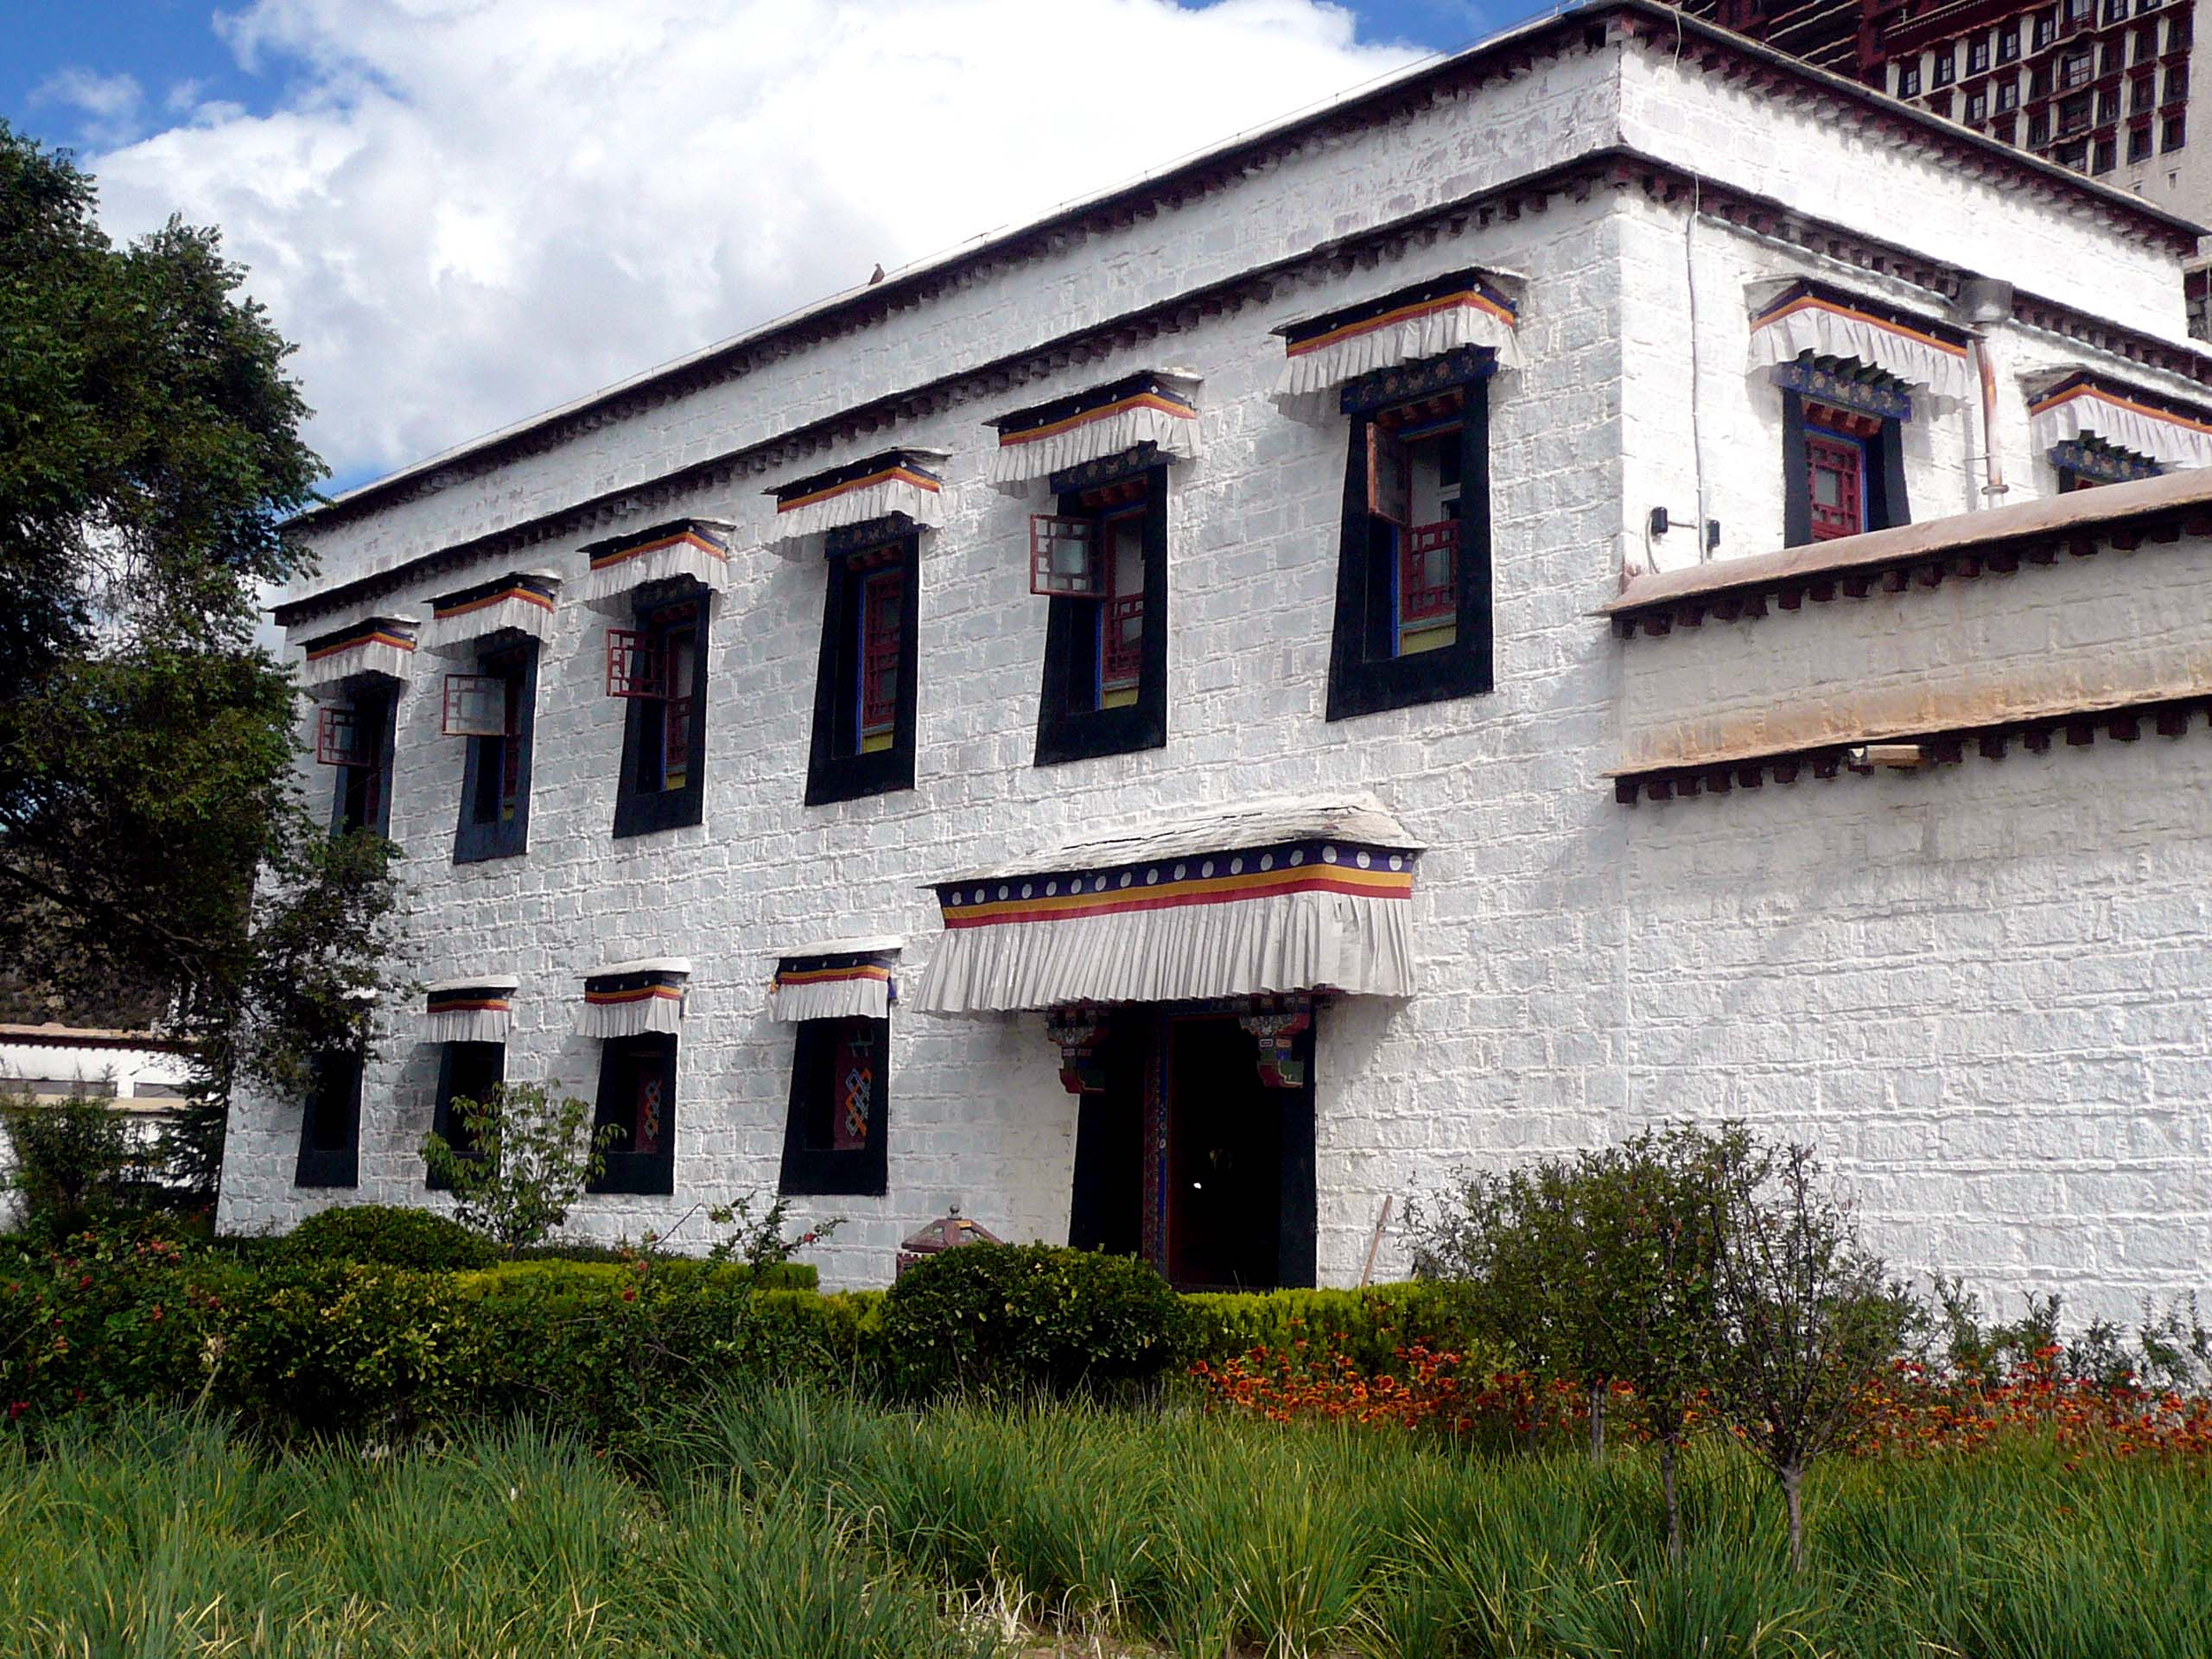 A typical level 1 administrative building within the protective walls of the Potala Palace